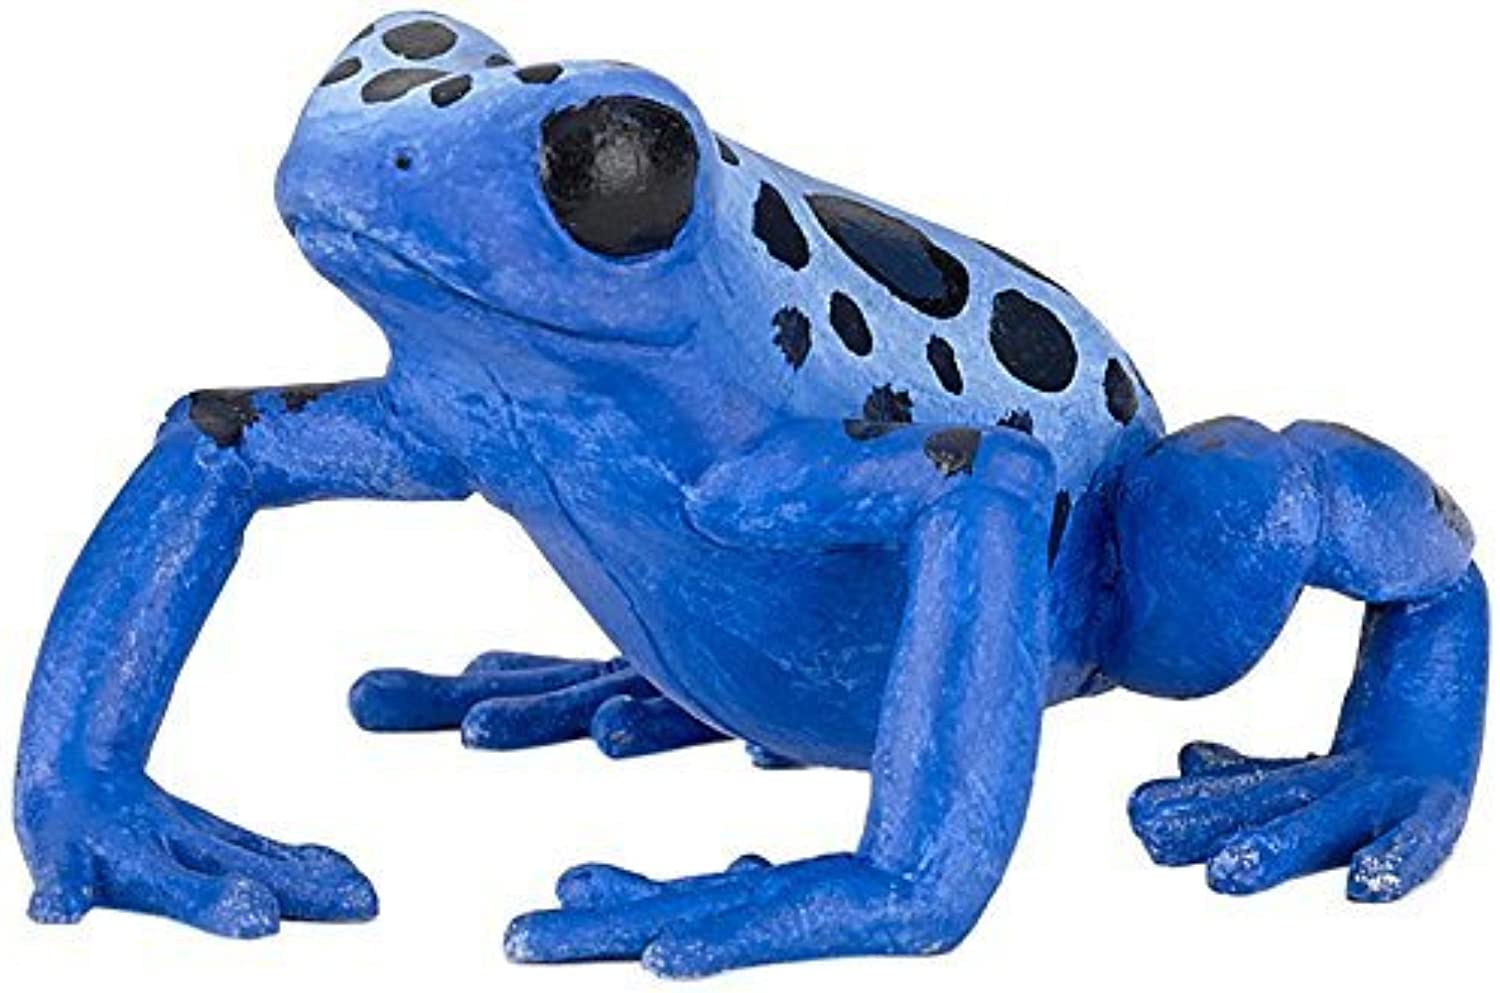 Equatorial bluee Frog by Papo